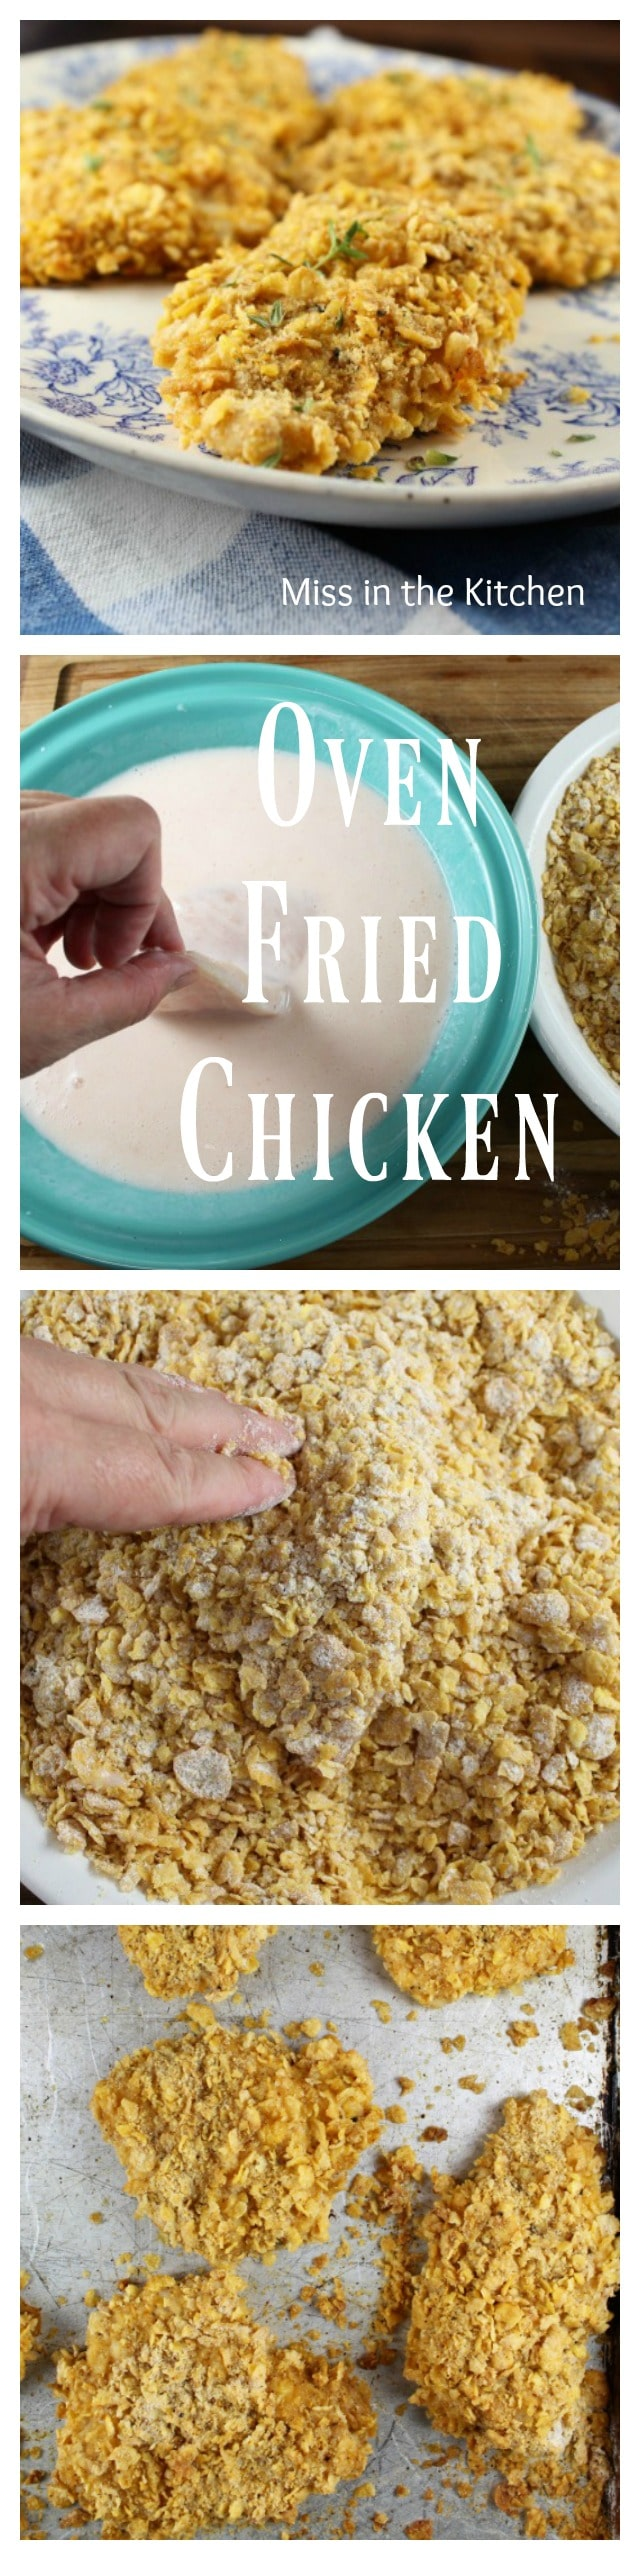 Oven Fried Chicken Recipe - a healthy twist on your favorite fried chicken dinner. From MissintheKitchen.com